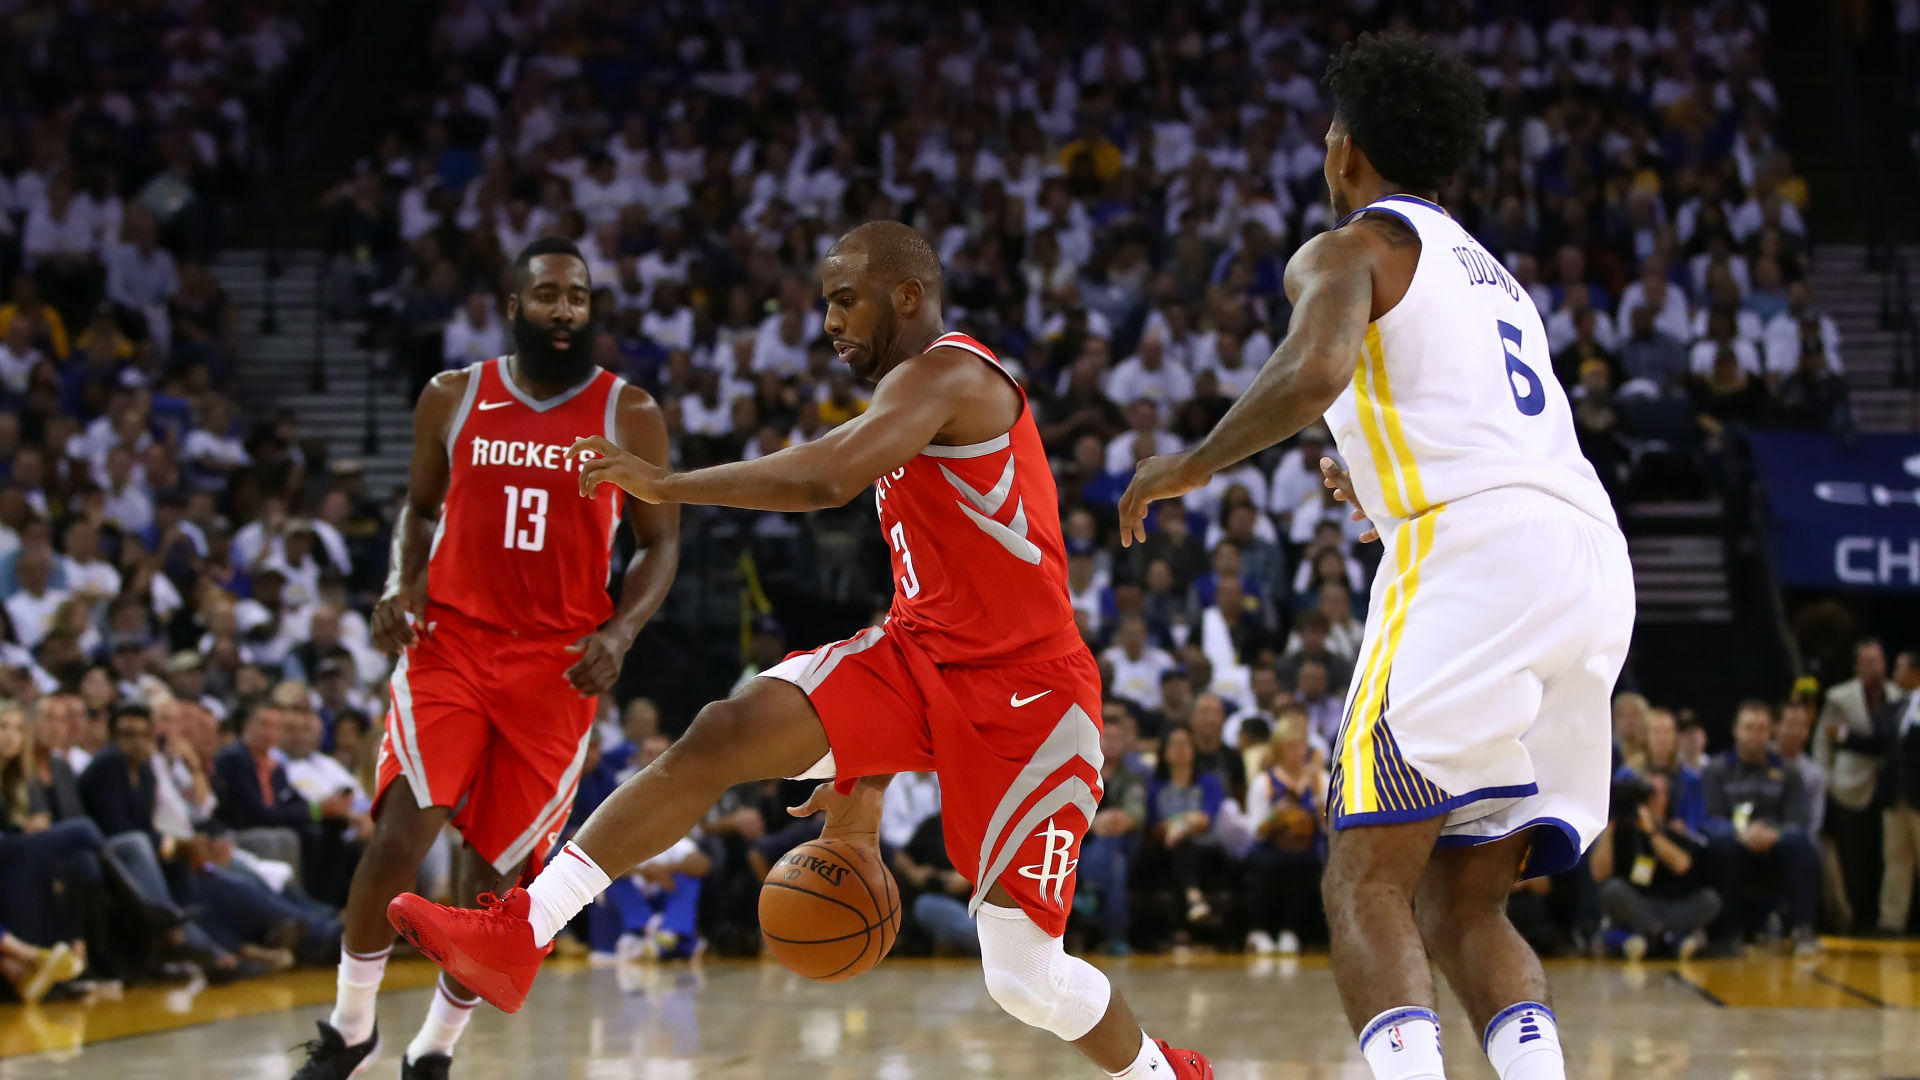 Western Conference finals set for Warriors-Rockets: 2018 NBA Playoffs rewind